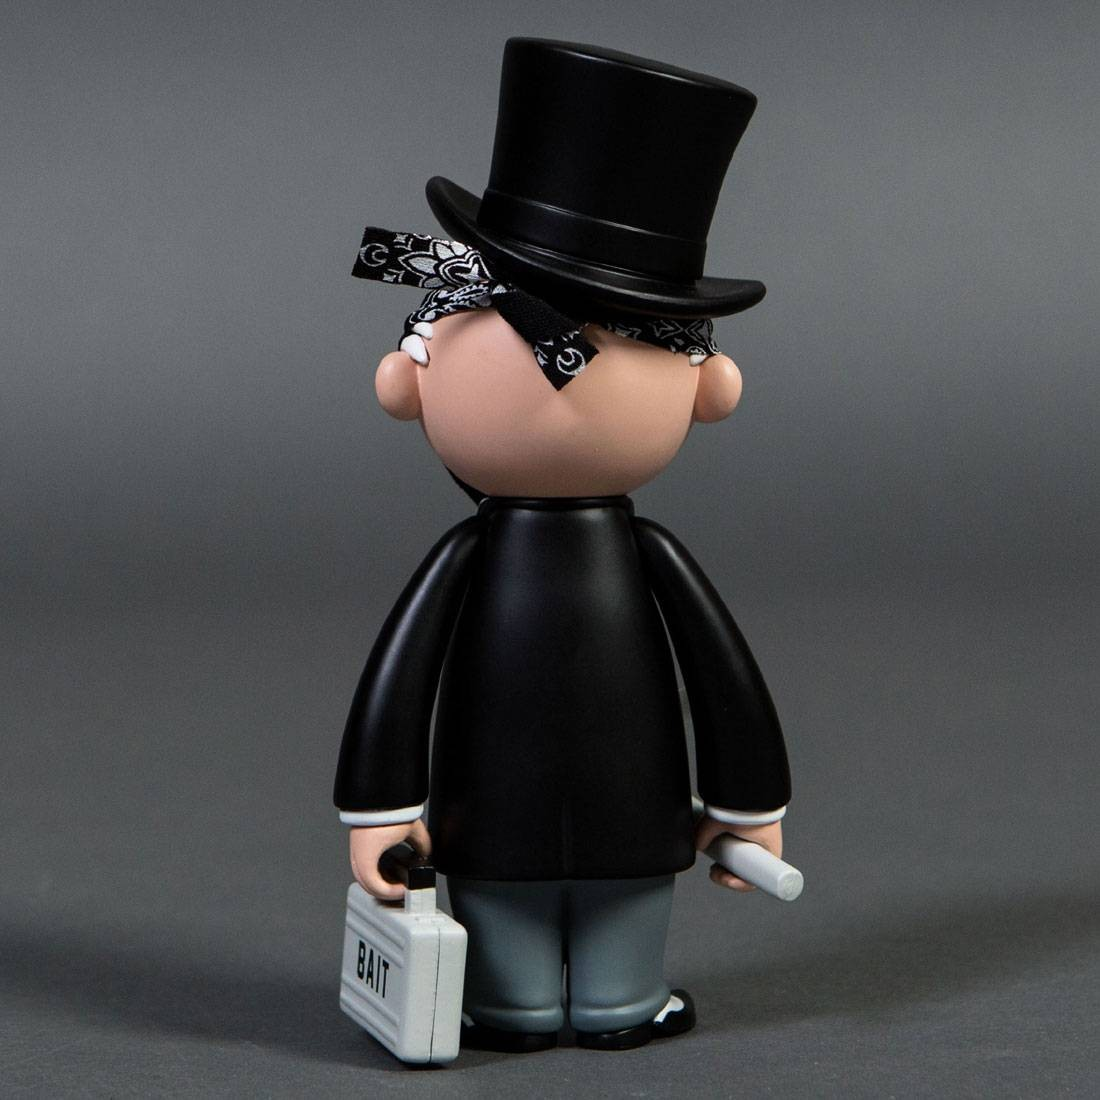 Bait X Monopoly X Switch Collectibles Mr Pennybags 7 Inch